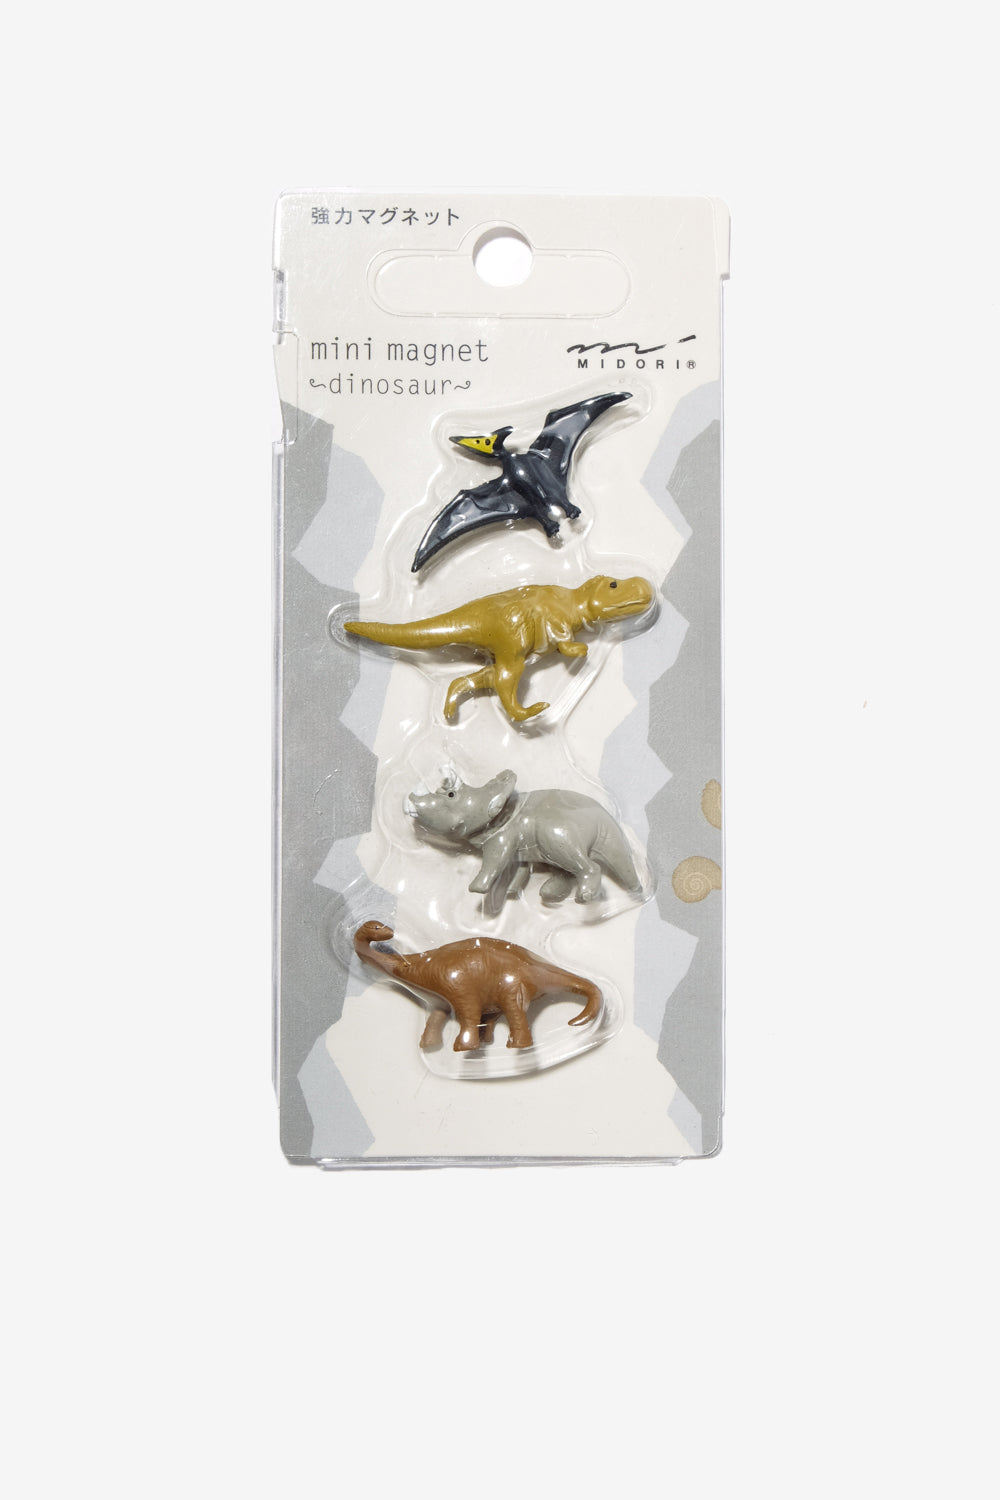 Mini Magnets Dinosaur, Office, Midori - Six and Sons